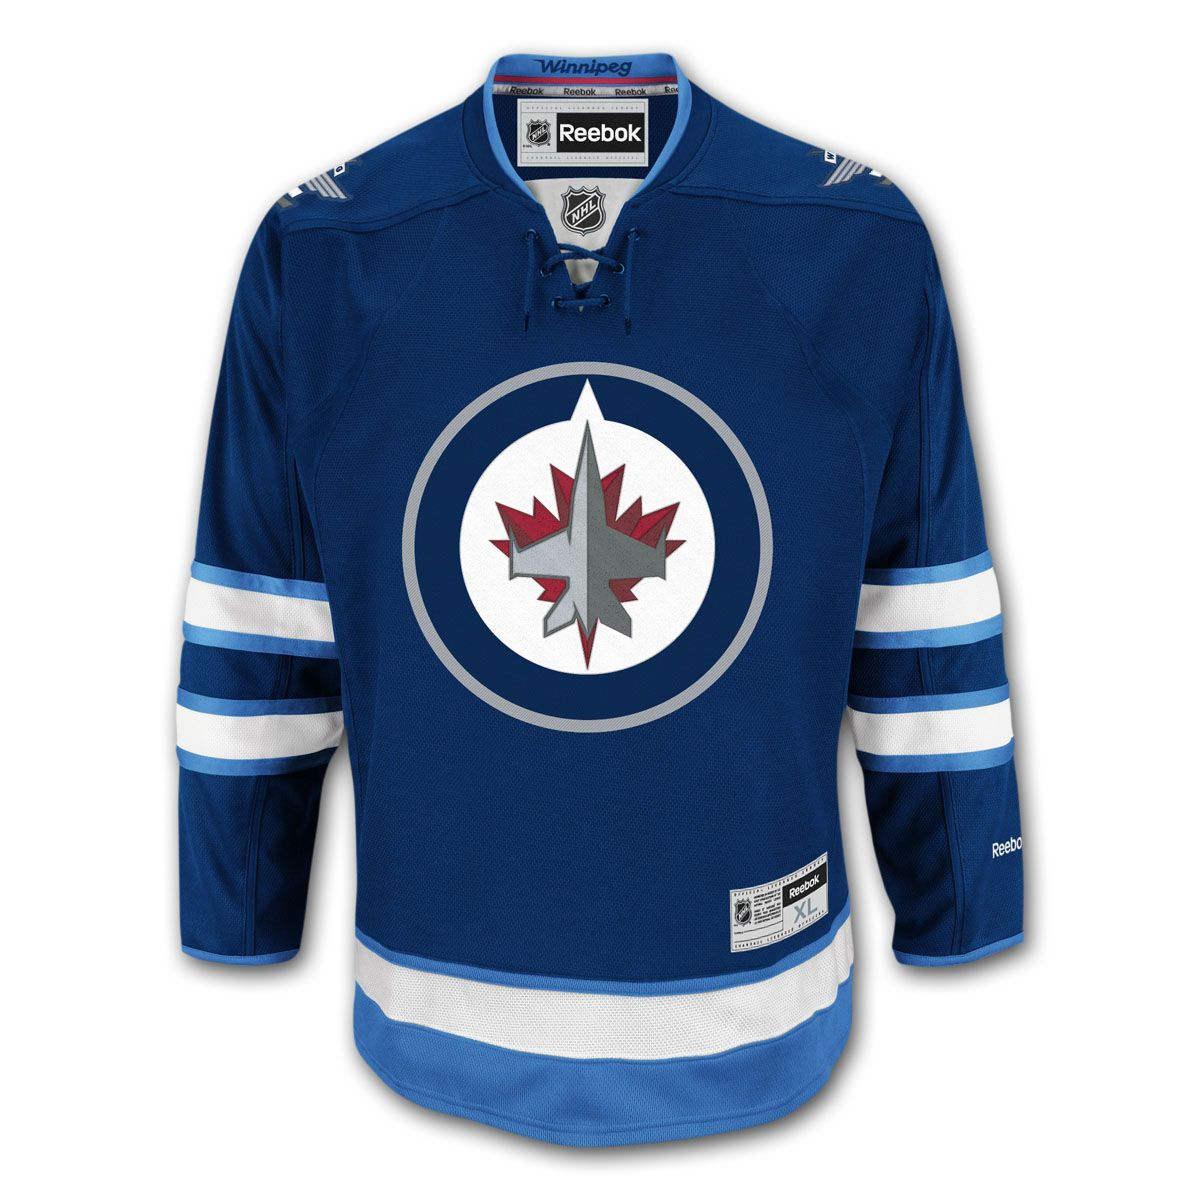 Winnipeg Jets Reebok Premier Replica Home NHL Hockey Jersey